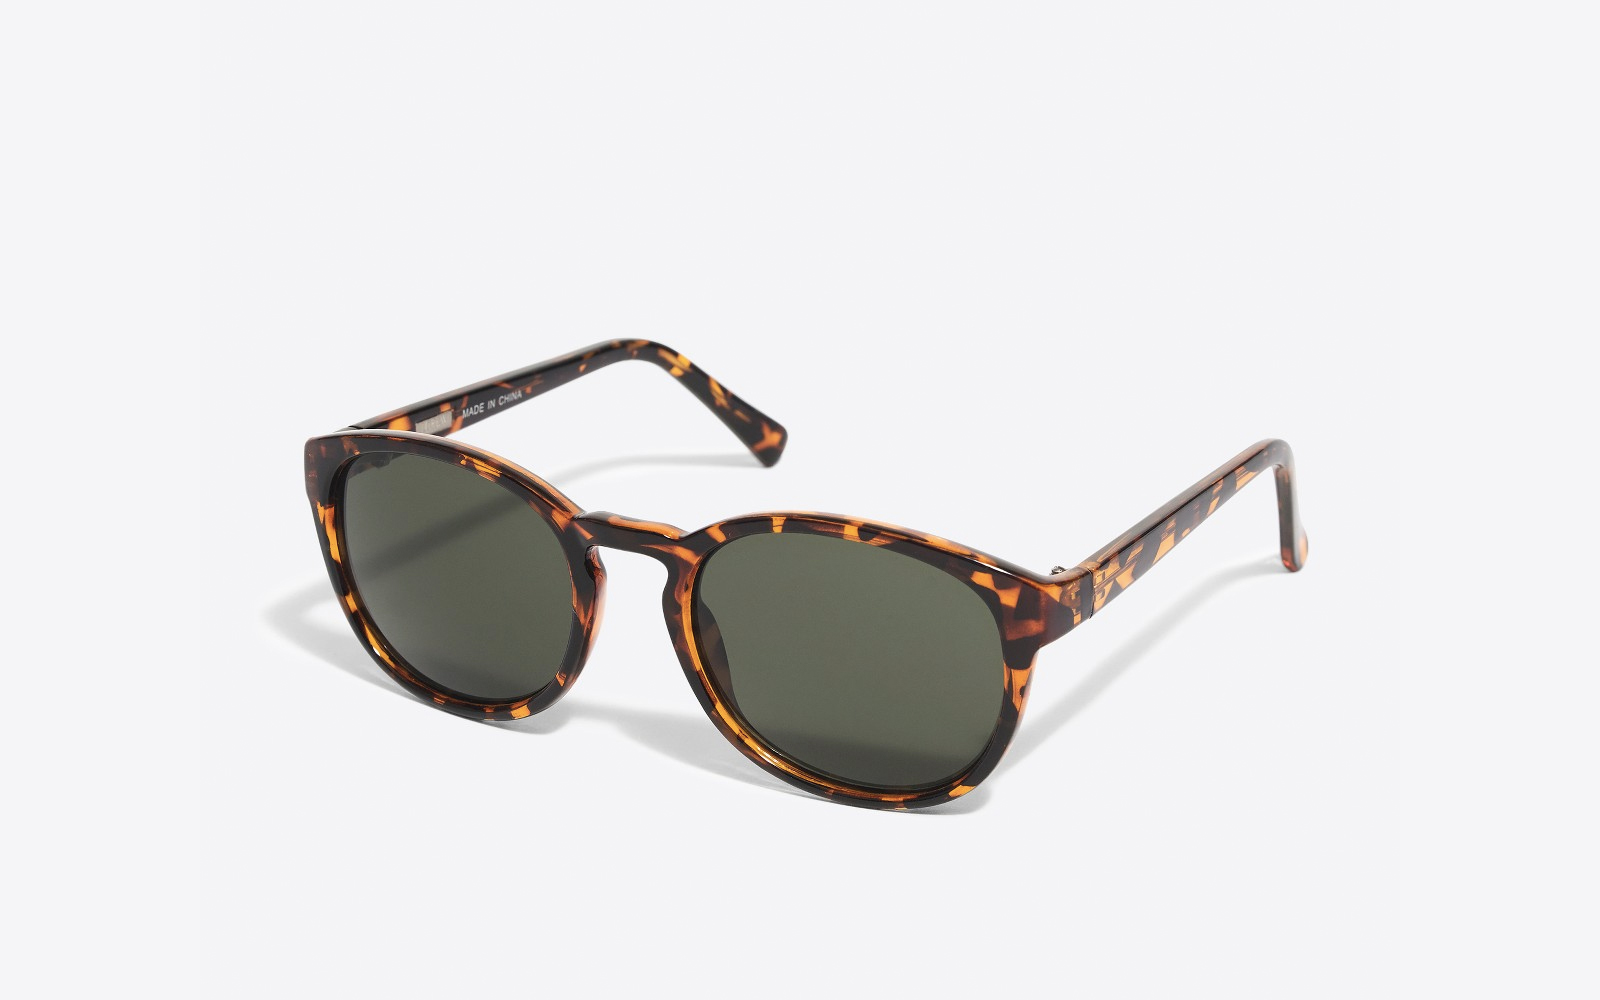 Men's Round Frame Sunglasses